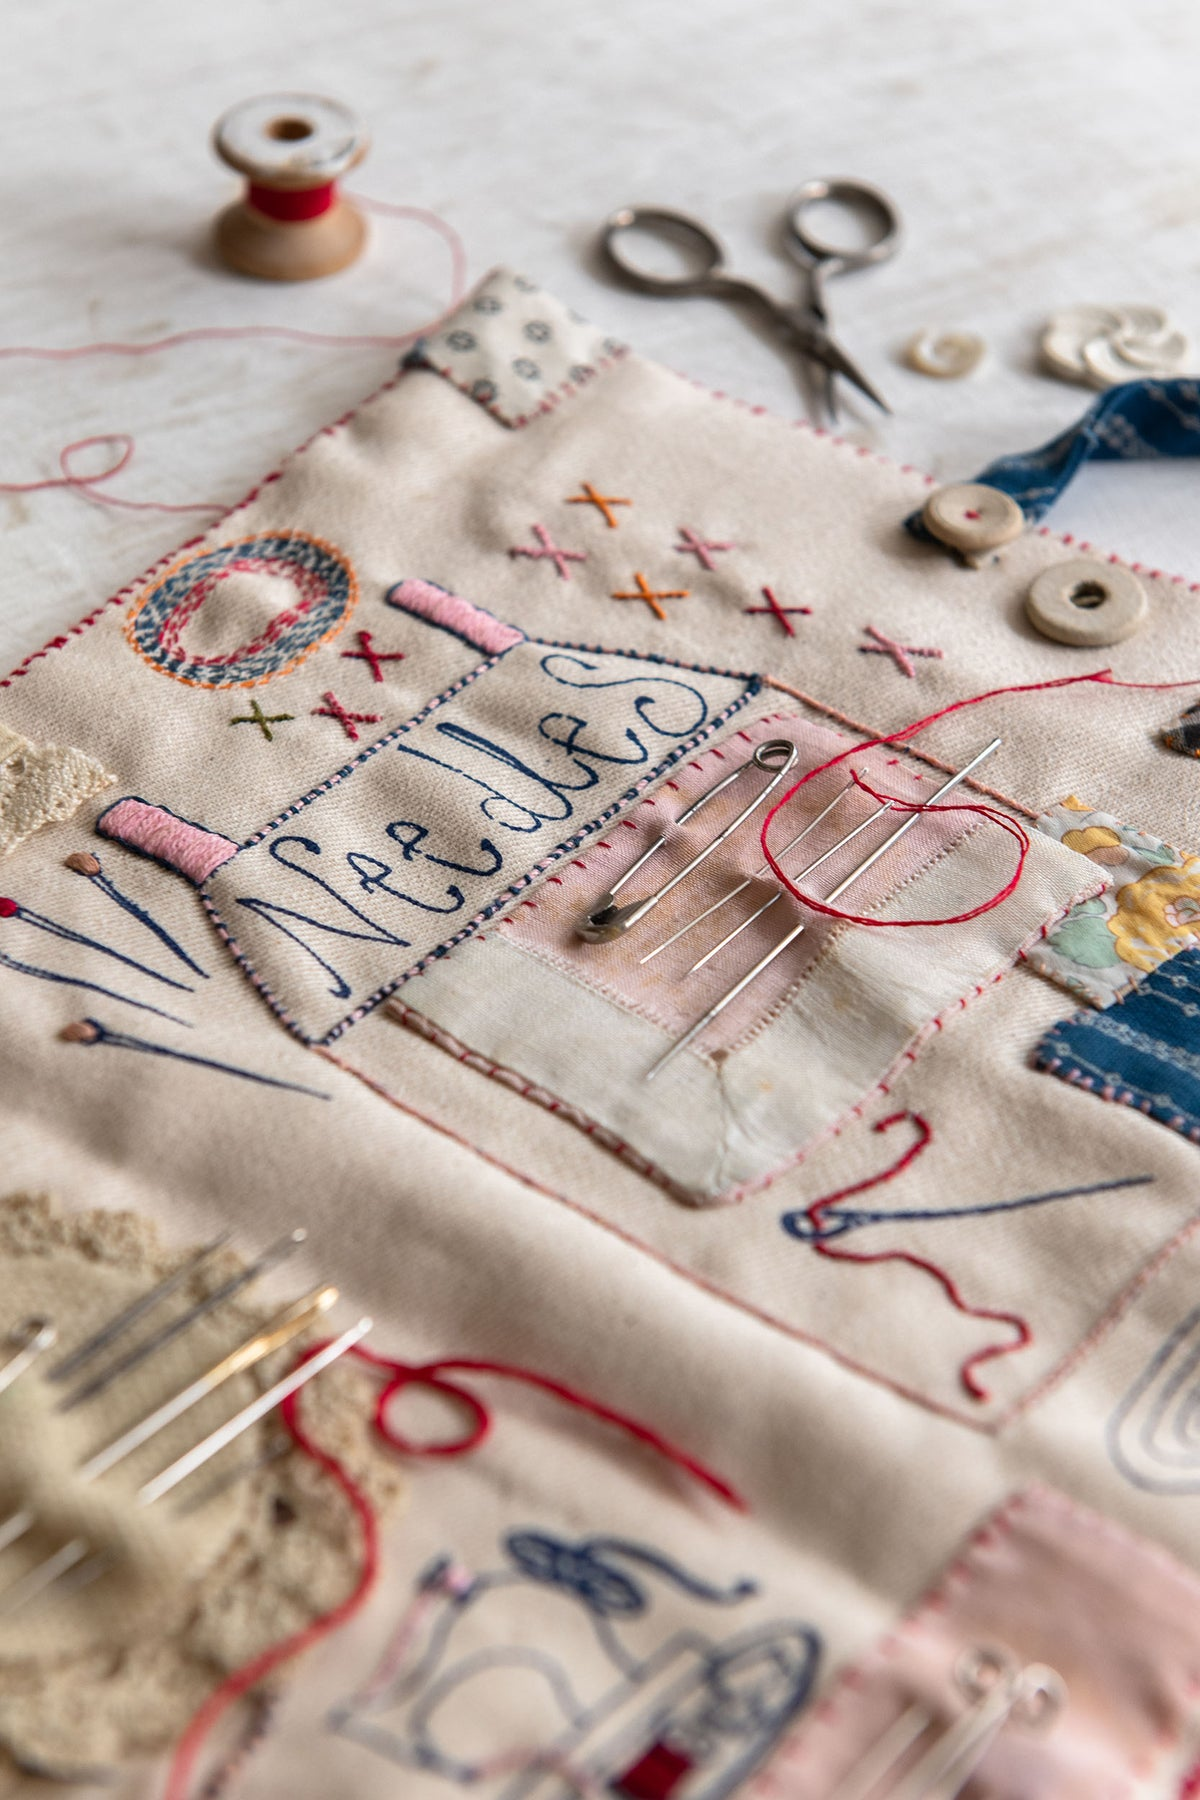 Image of 'Make Your Own Sewing Set' kit